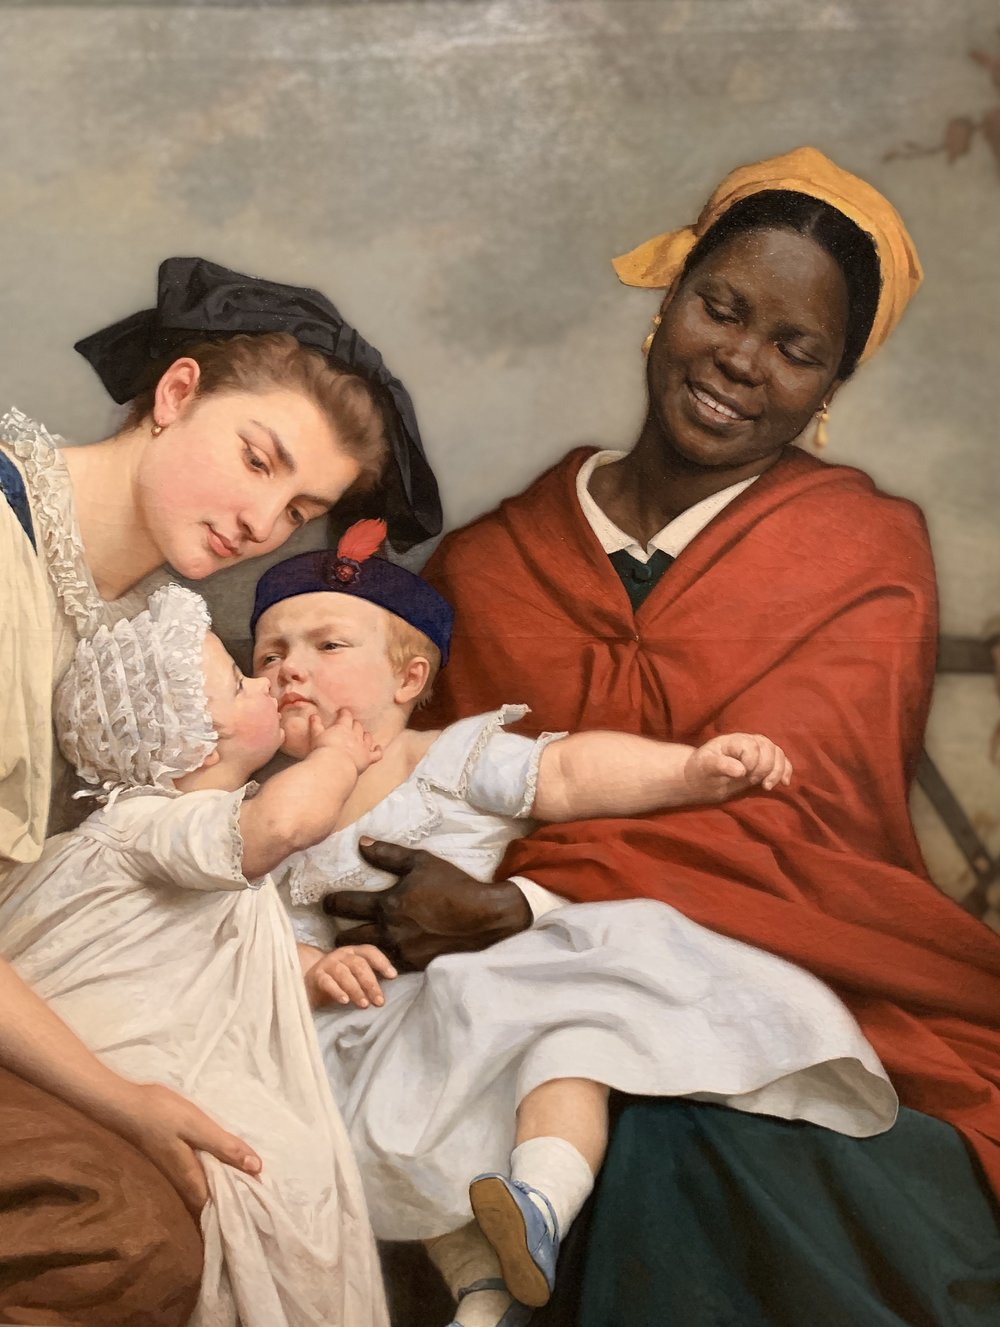 Two nannies and the children they're taking care of.This is one of my favorite images, it transmits so much warmth. The model on the right is not only seen as an equal to her white counterpart, but she carries the most weight in this painting. Her tall posture, warm smile, and the vibrant color of her skin and clothing standing out against the dull beige and grey background. She looks beautiful and regal. -